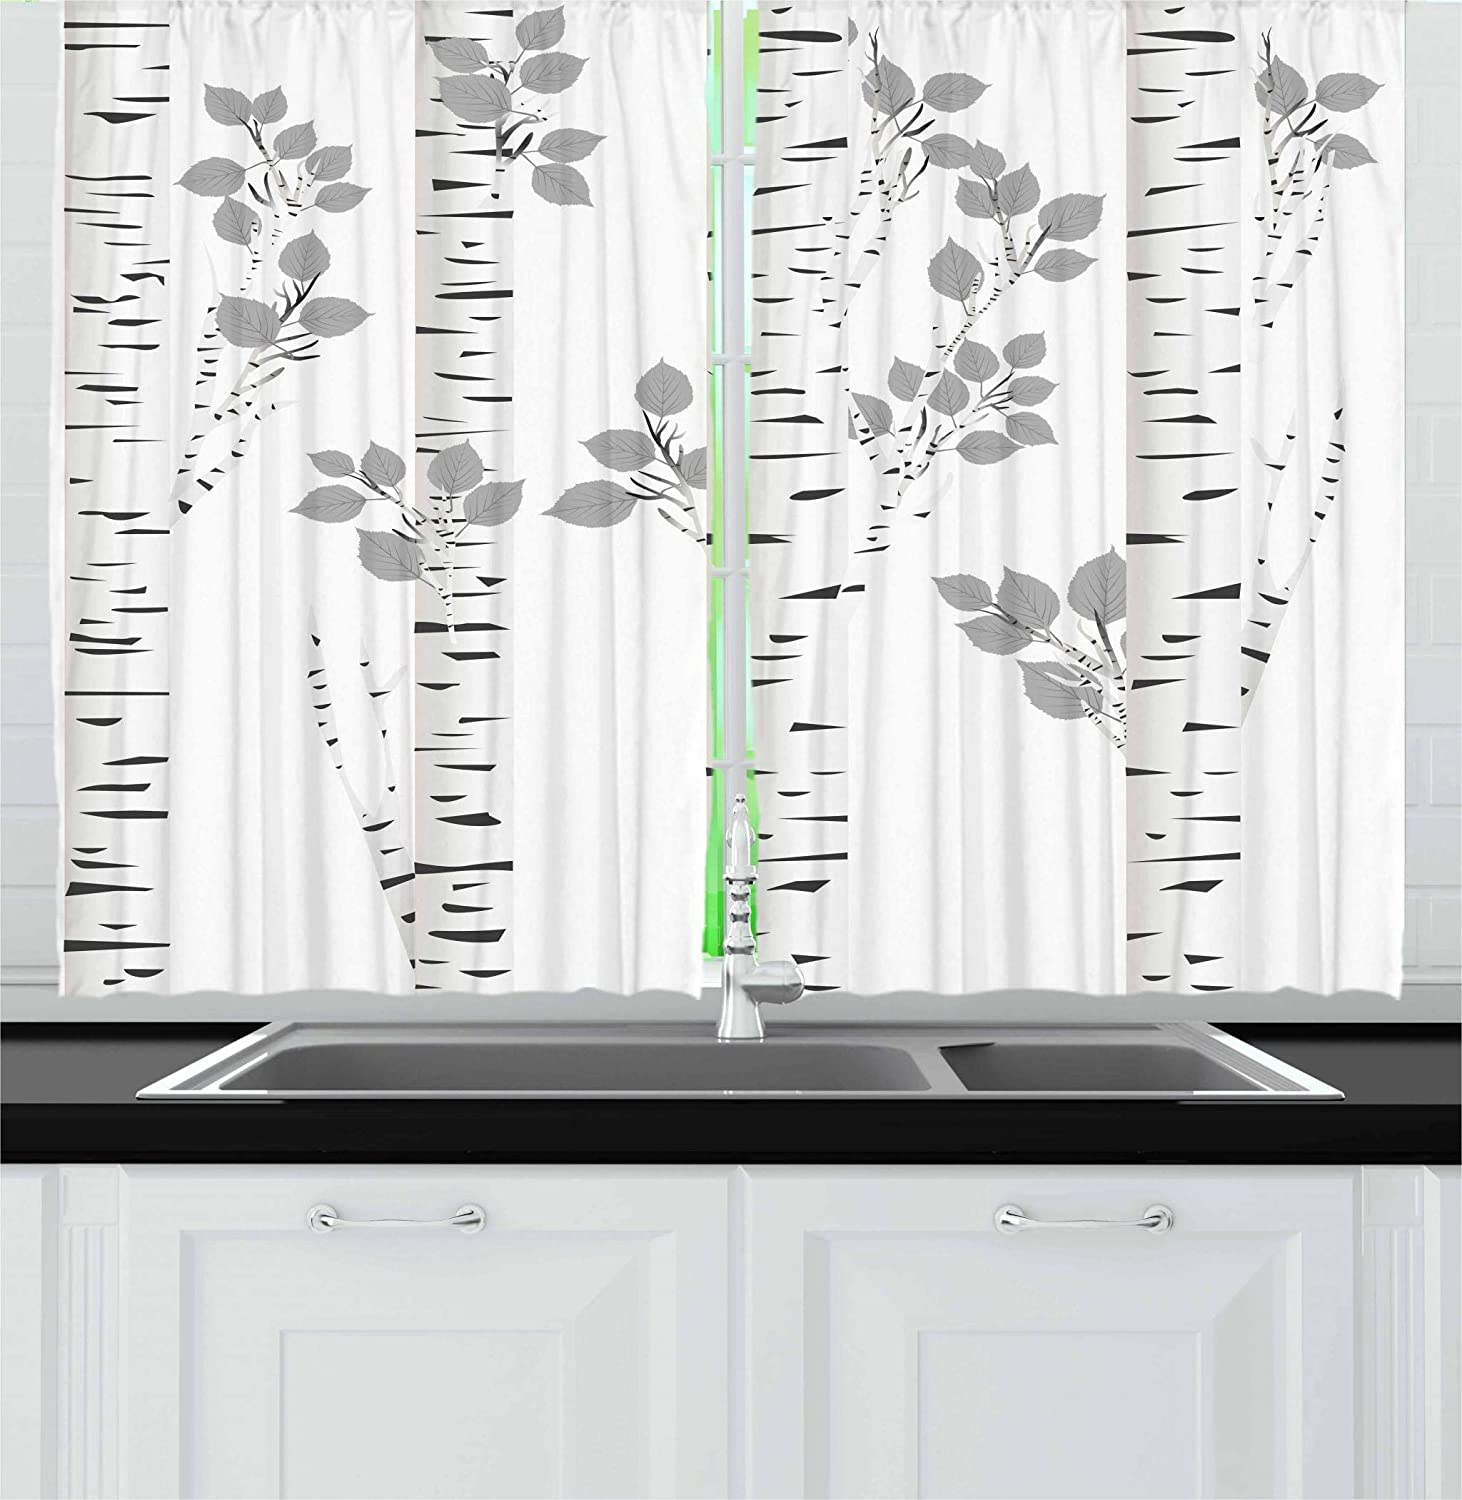 Ambesonne Birch Tree Kitchen Curtains, Artistic White Branches with Leaves Autumn Nature Forest Inspired Image Print, Window Drapes 2 Panel Set for Kitchen Cafe, 55 W X 39 L Inches, Grey White